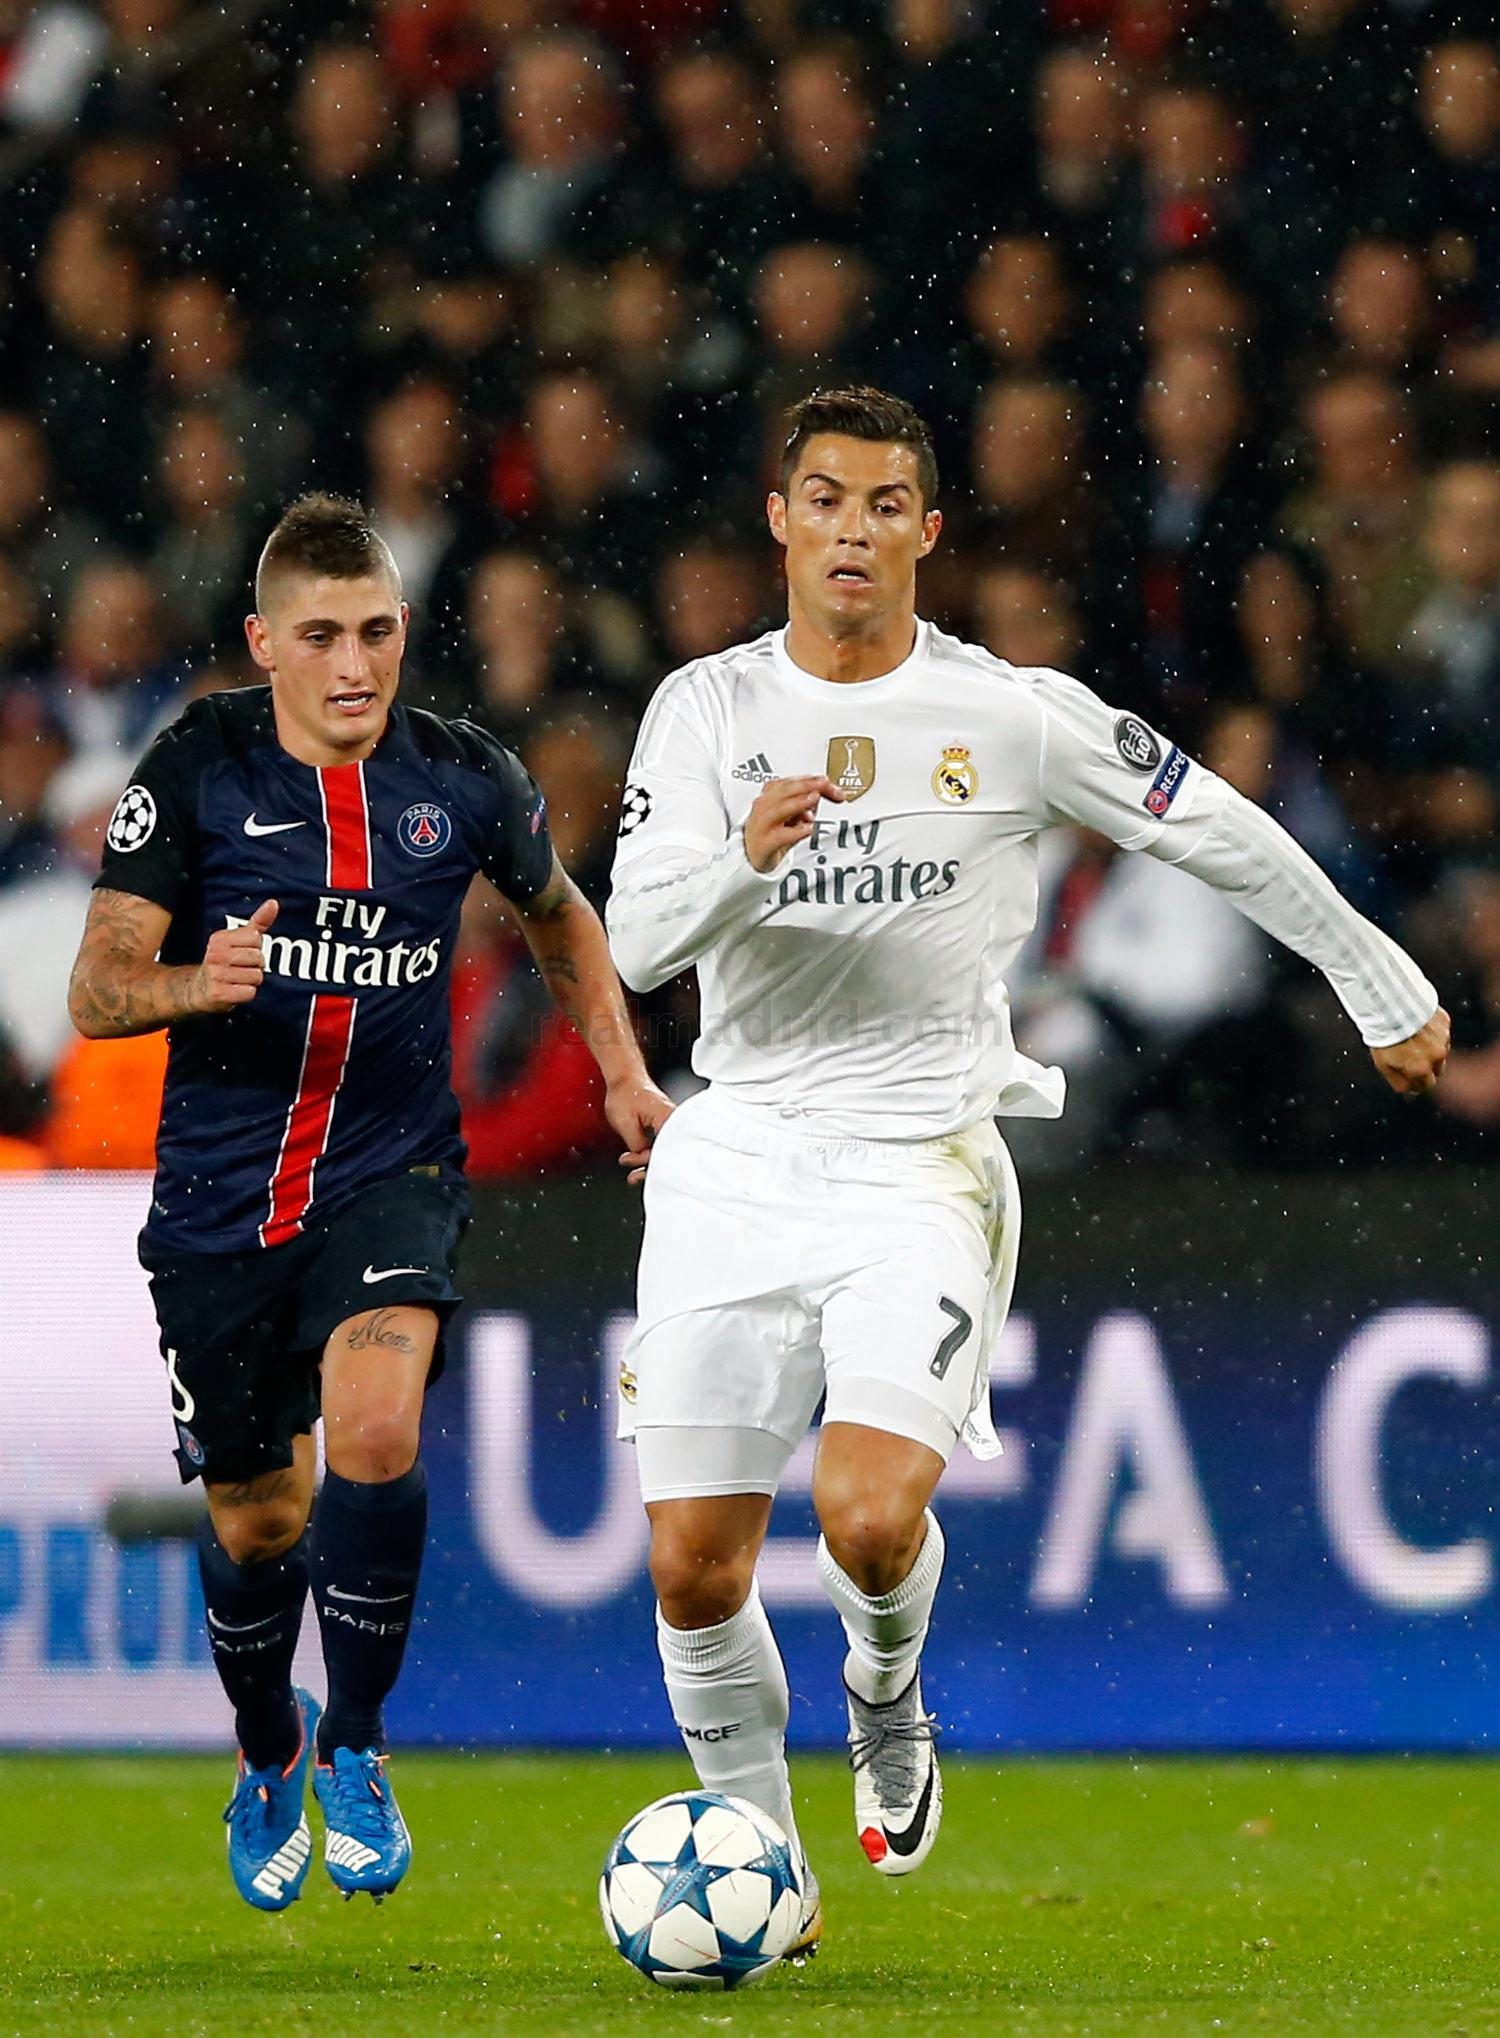 Real Madrid - Paris Saint-Germain - Real Madrid - 21-10-2015